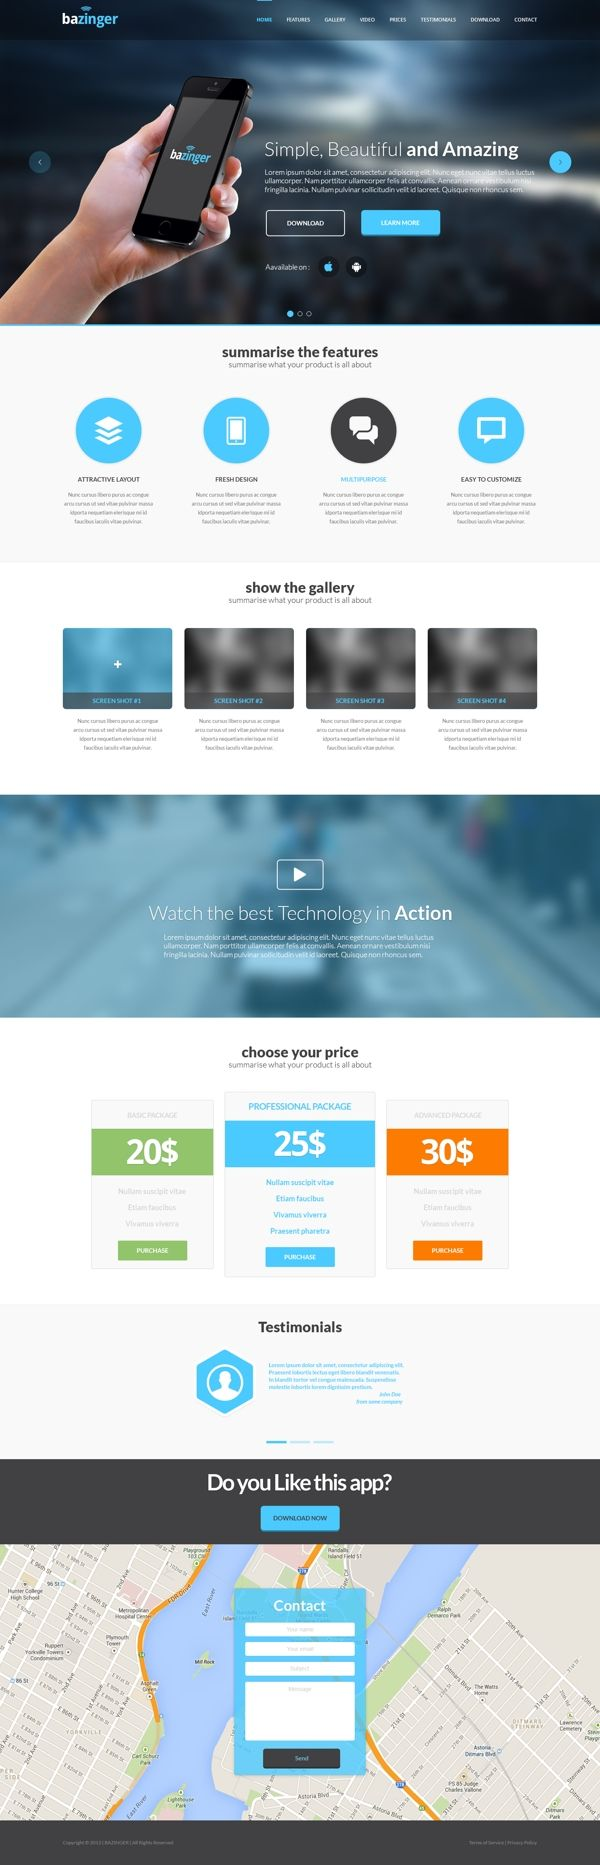 Bazinger - Free PSD Landing Page Template